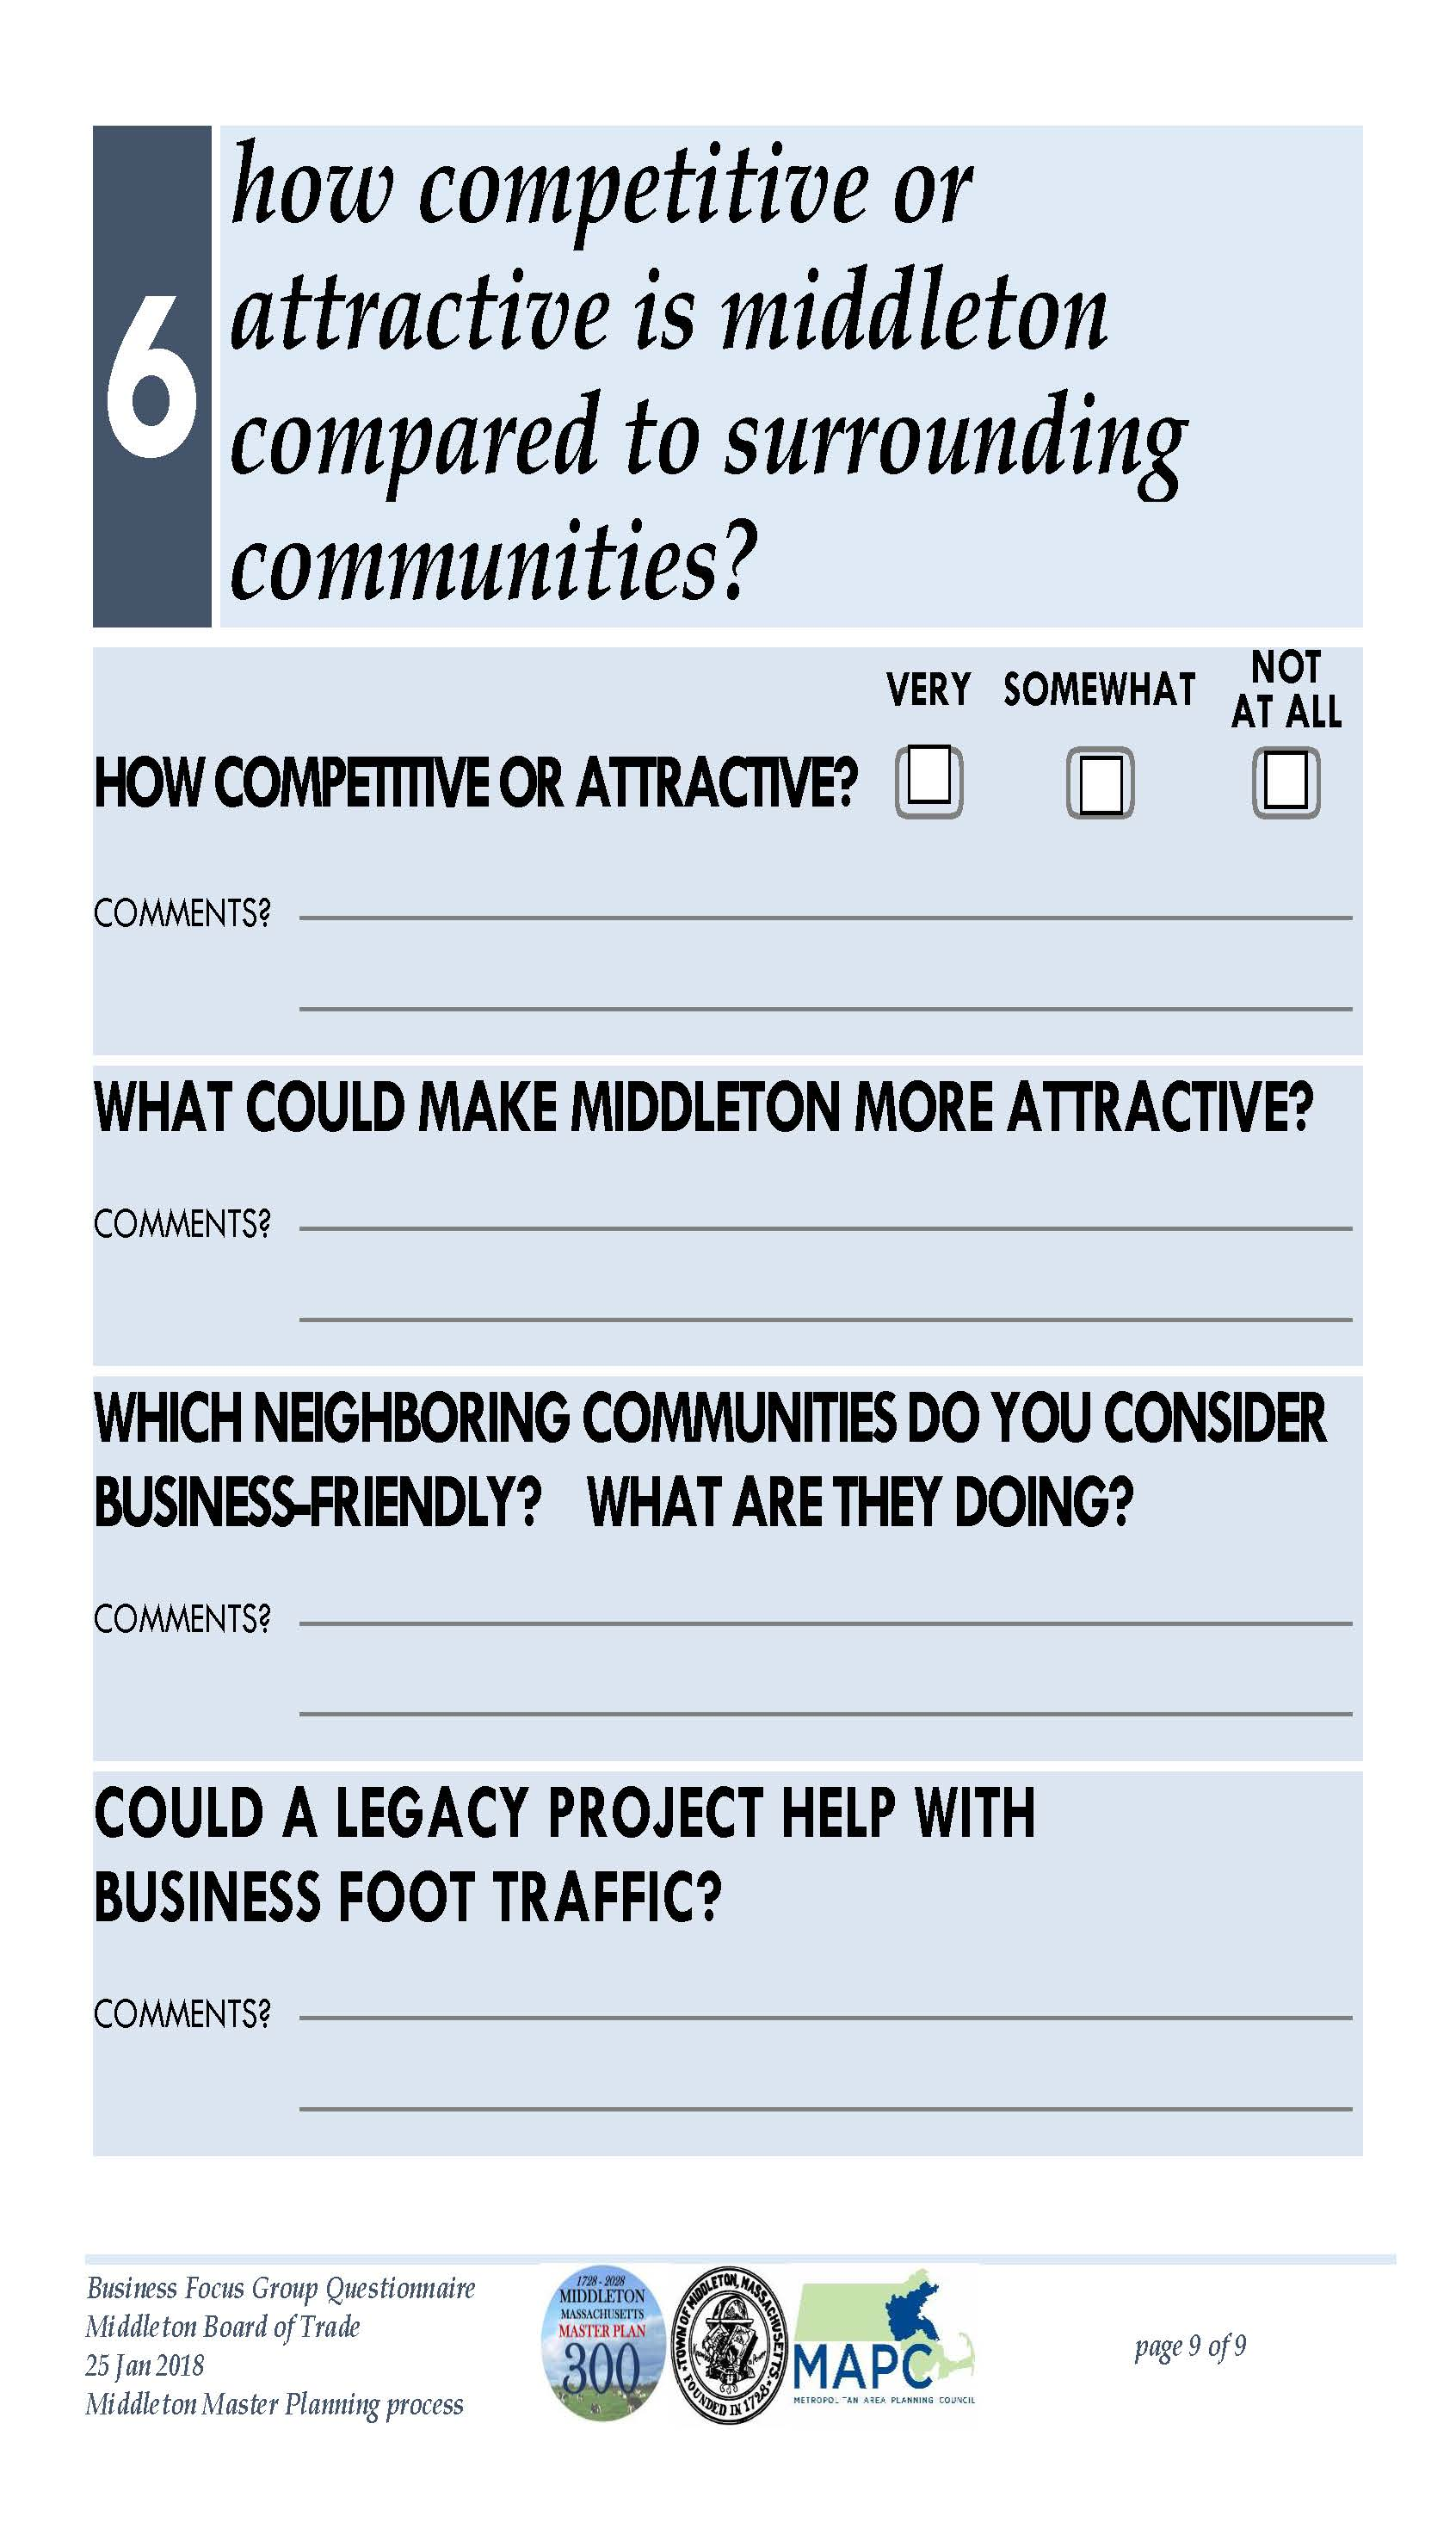 Board of Trade Middleton Focus Group Questionnaire 25 JAN 2018 ONLINE_FORM_Page_9.jpg